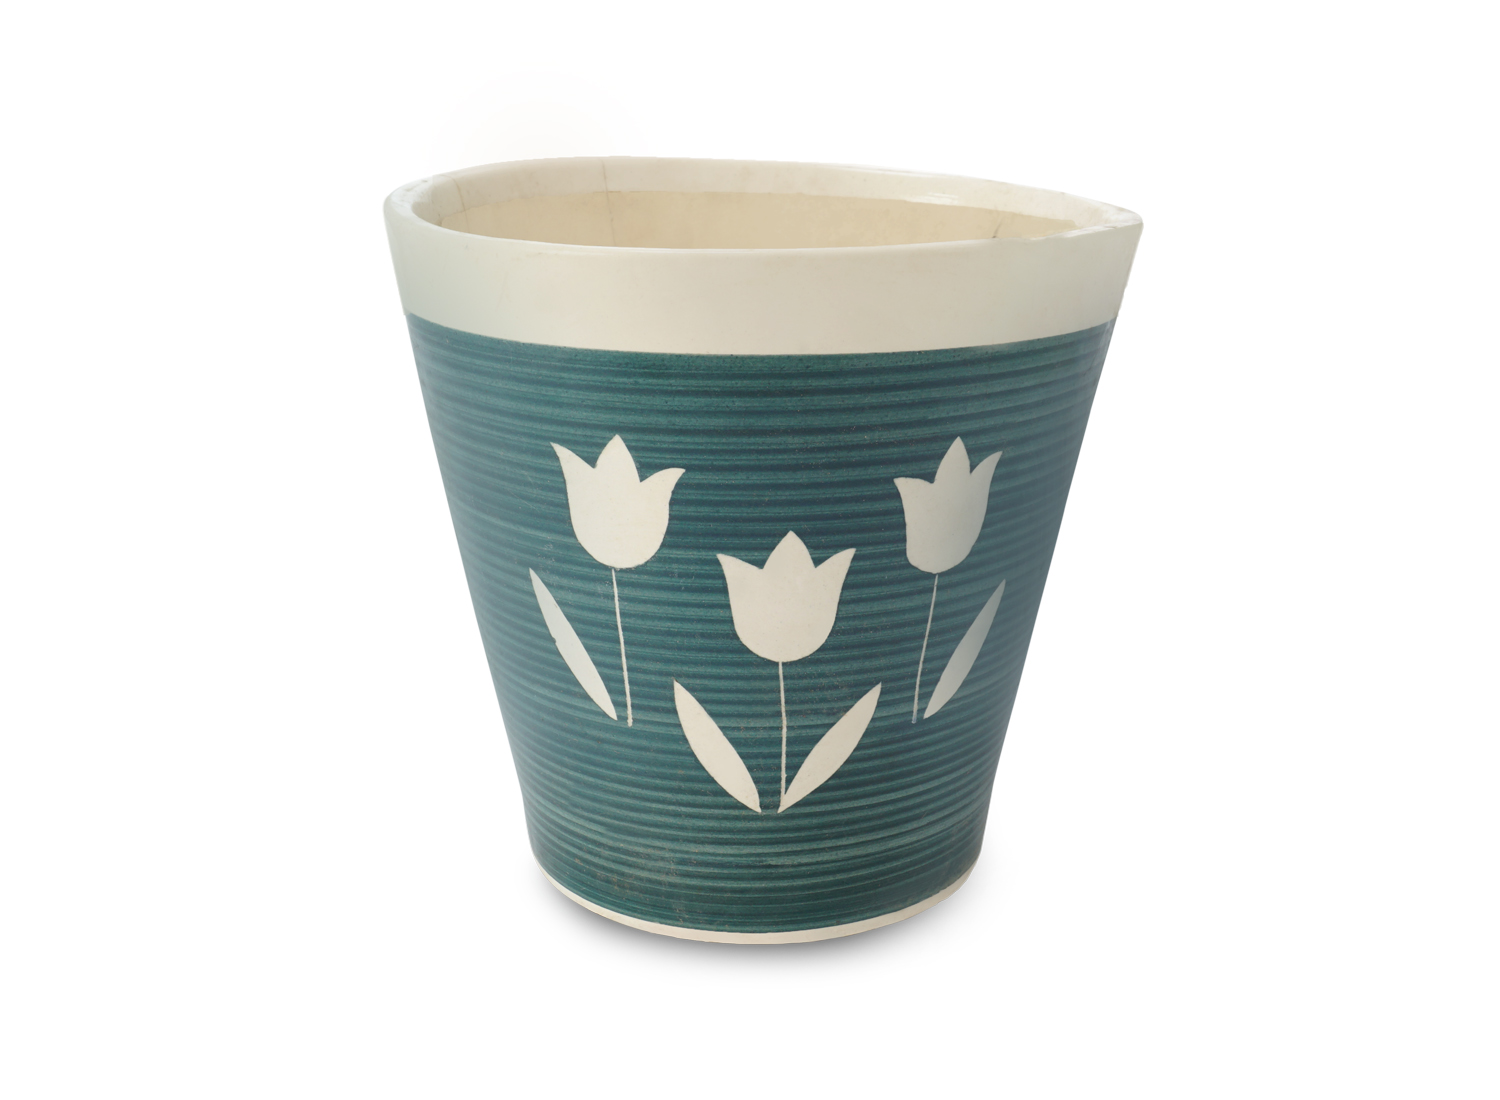 Flower Printed Pot Front View by the best online nursery shop Greendecor.